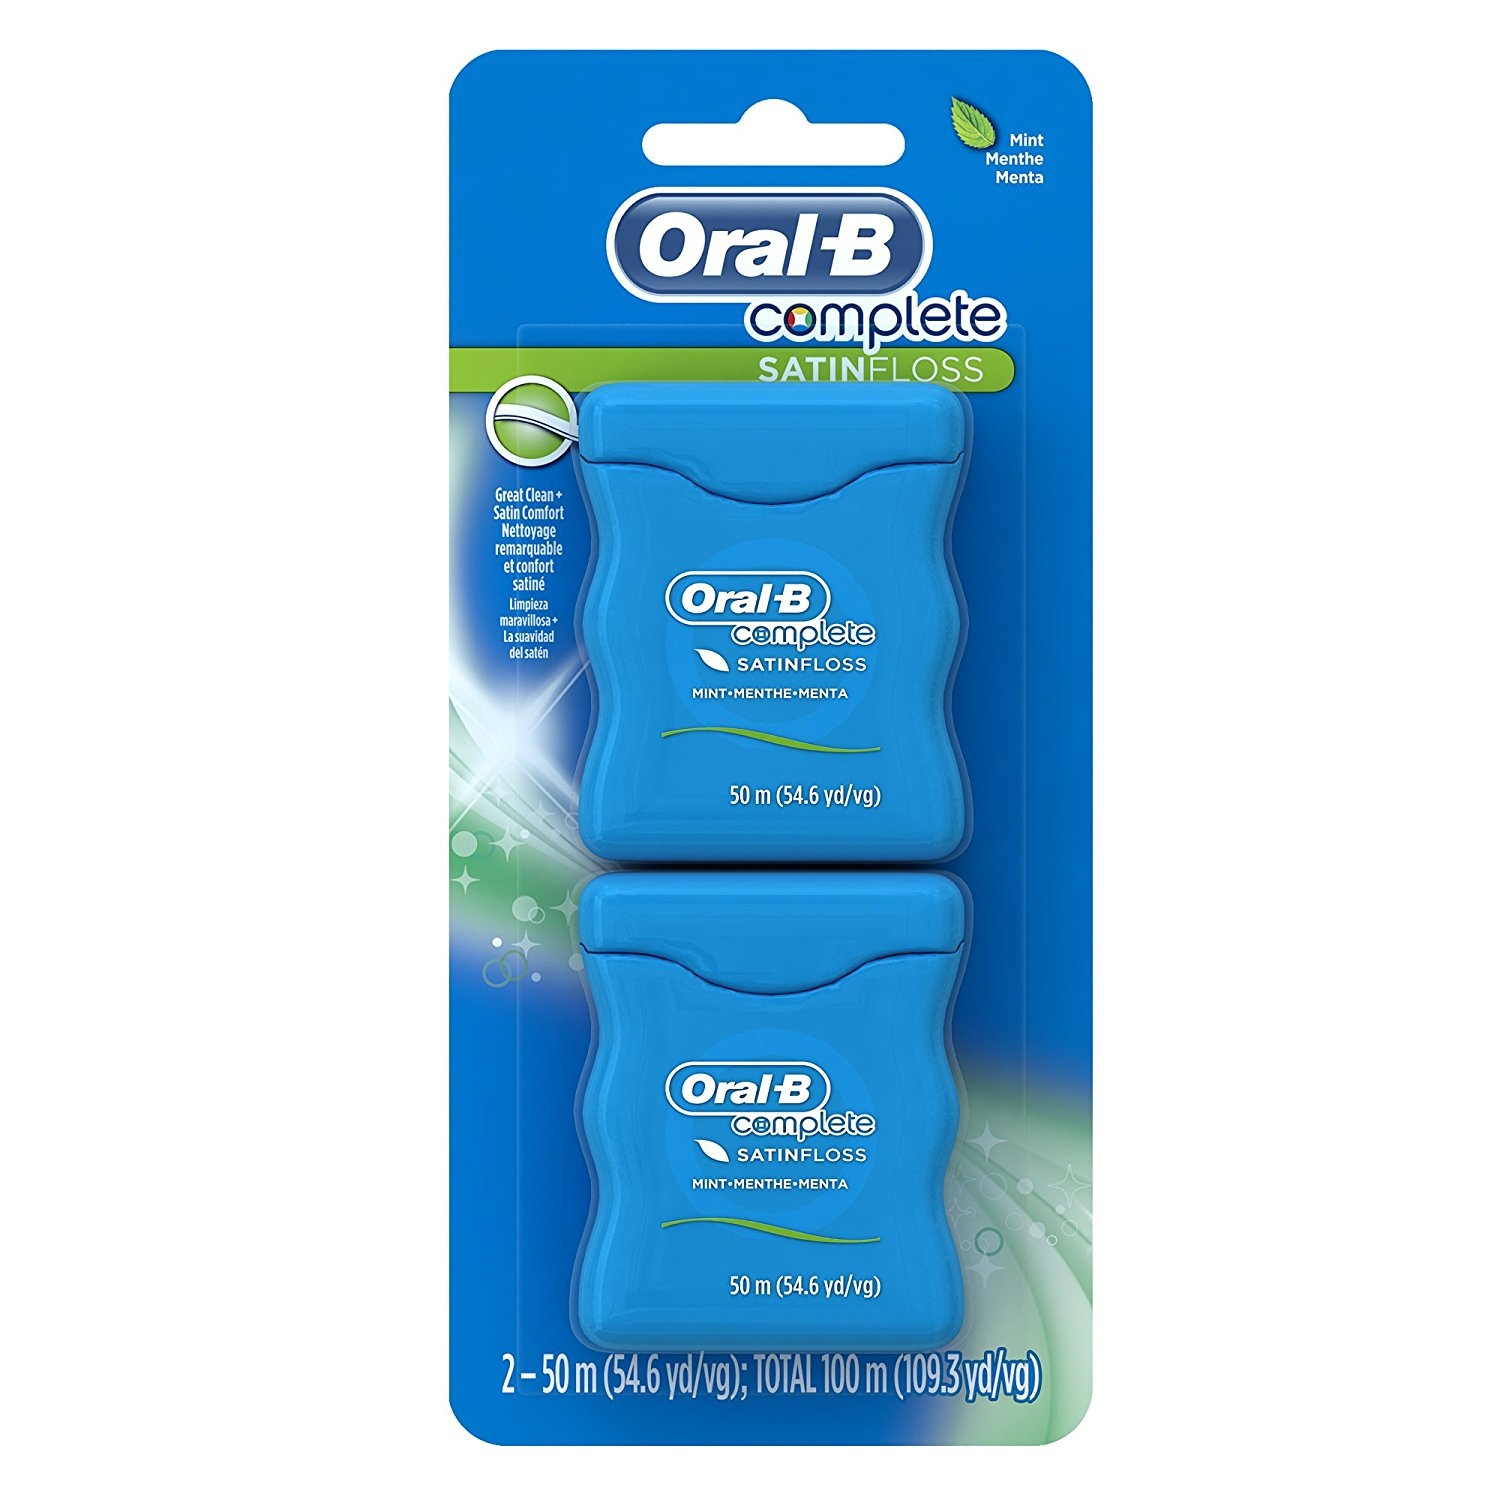 Oral-B Complete SatinFloss Dental Floss, Mint, 50 M, Pack of 2